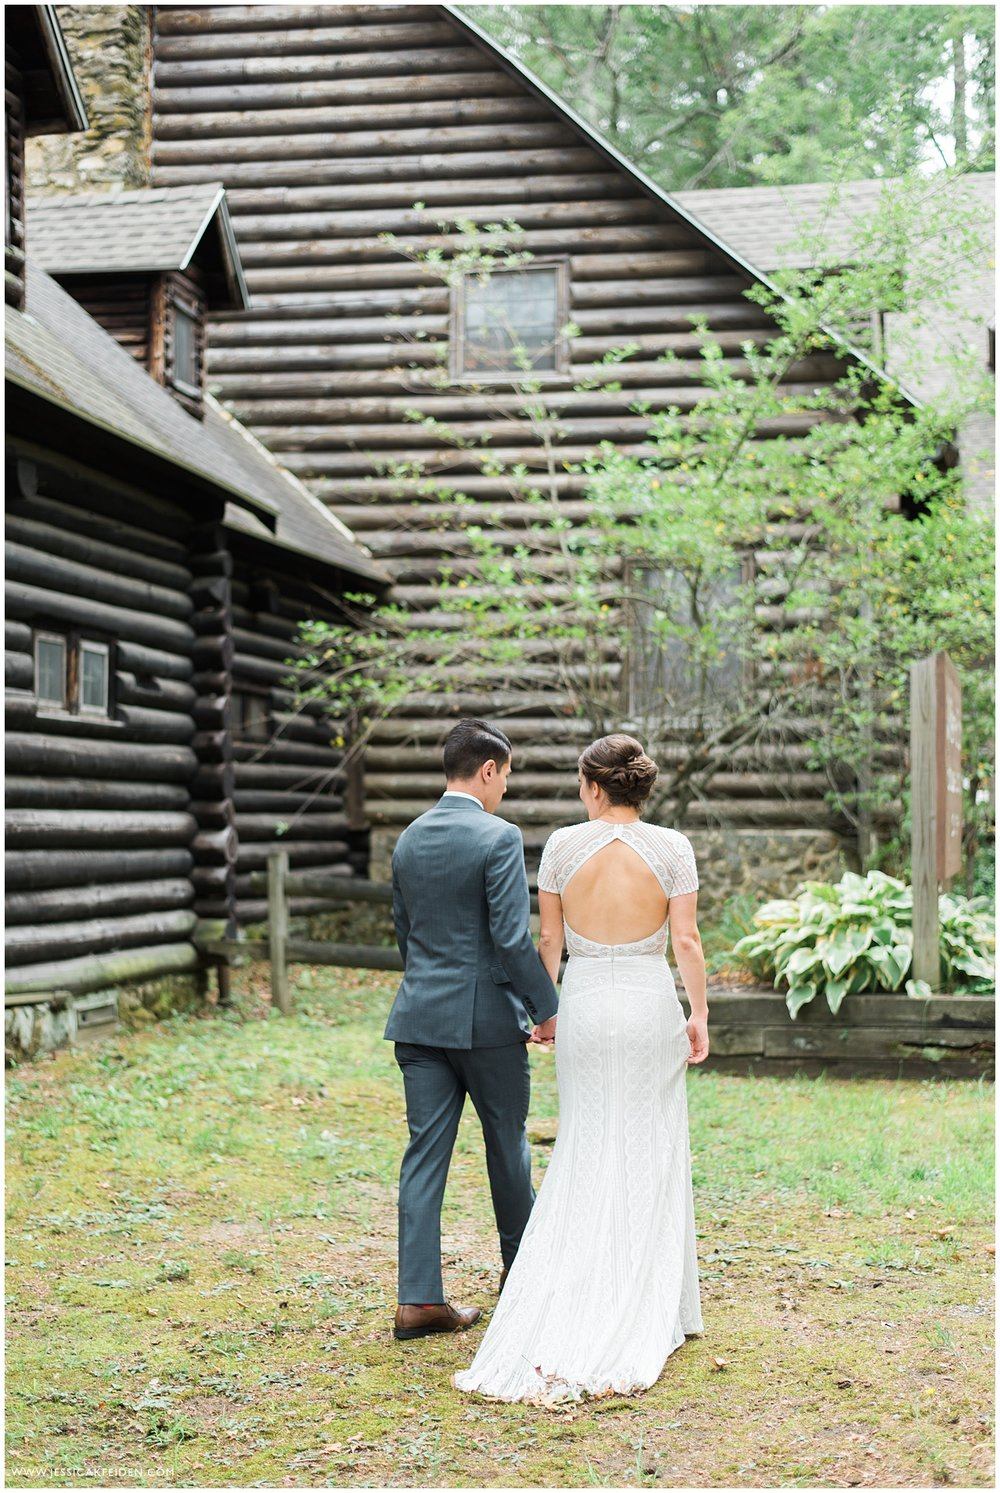 Jessica K Feiden Photography_Camp Wing Duxbury Wedding_0017.jpg